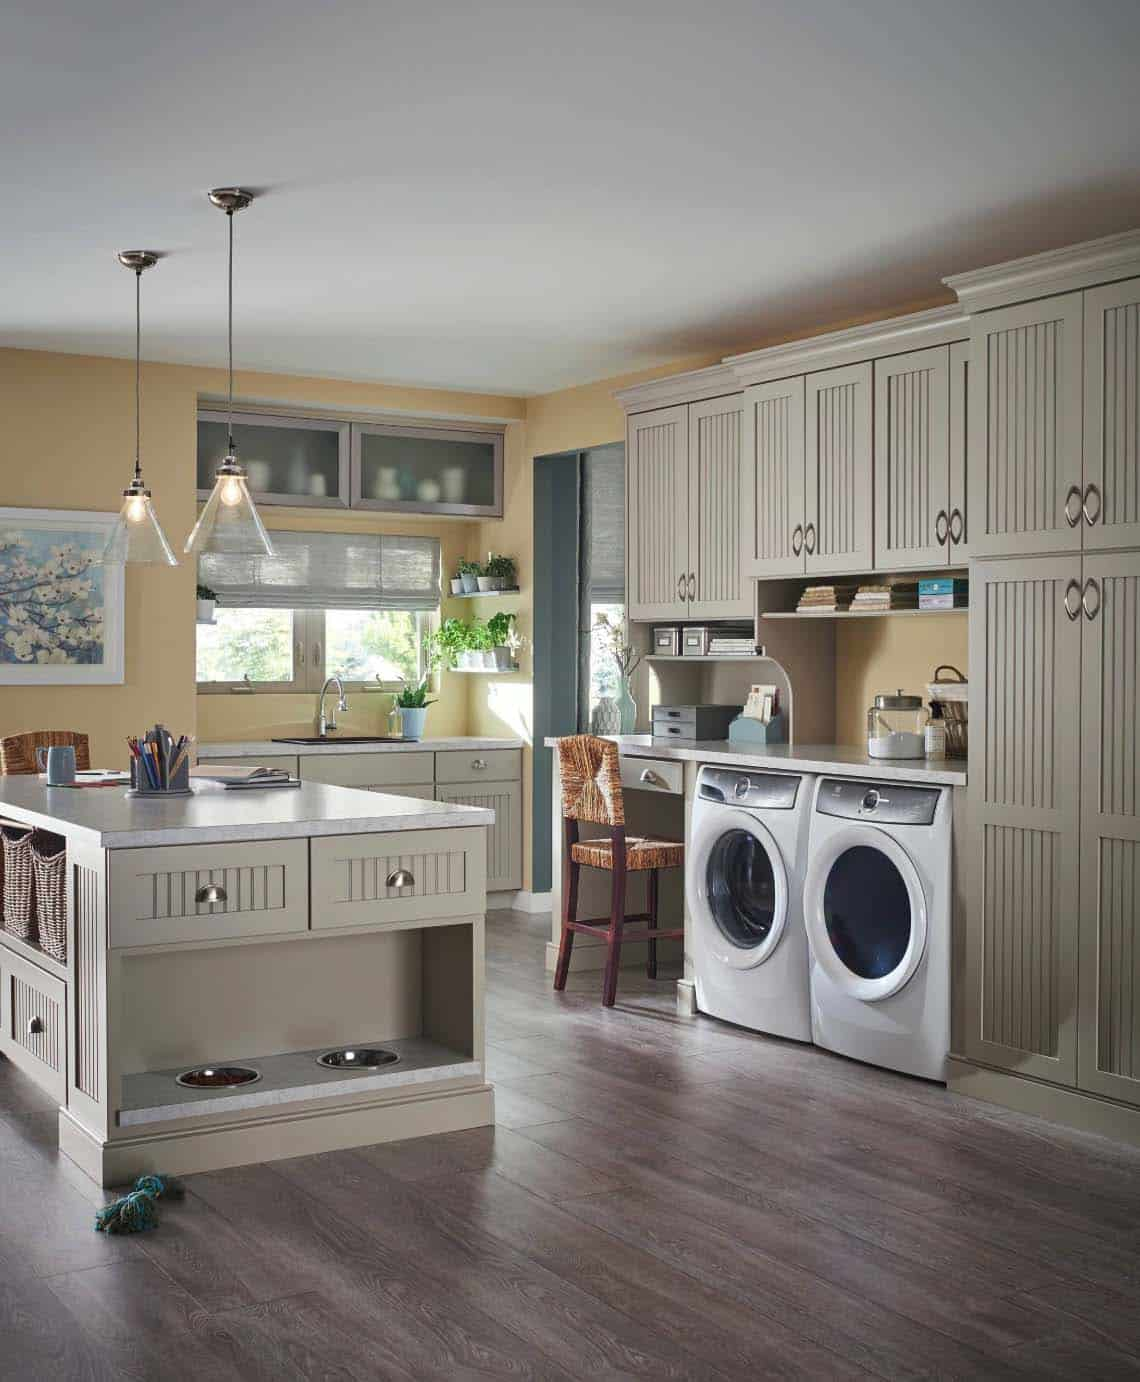 45 Functional And Stylish Laundry Room Design Ideas To Inspire on Laundry Room Decor Ideas  id=65822